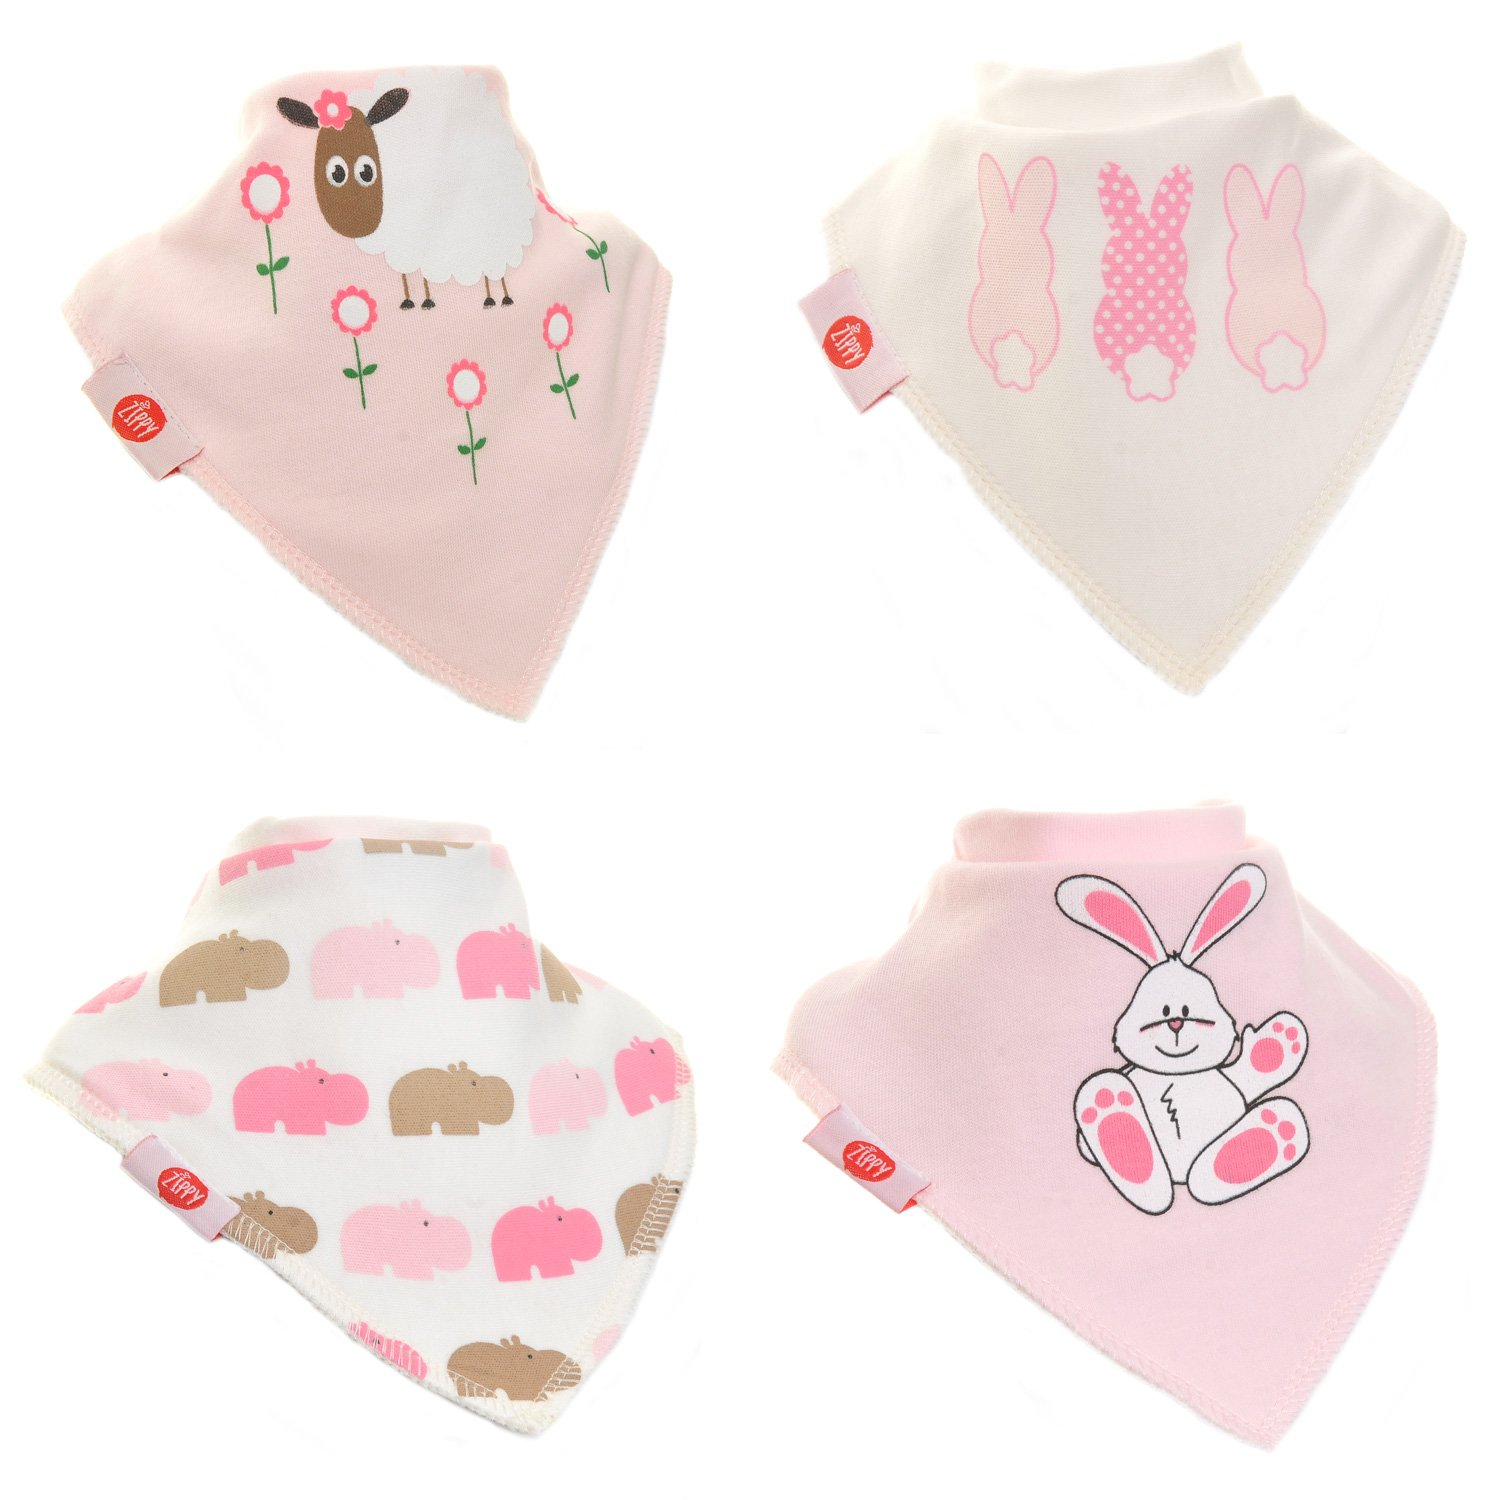 Fun Baby and Toddler Bandana Bib - Absorbent 100% Cotton Front Dribble Bibs with Adjustable Straps (4 Pack Gift Set) Girls Cute Pink